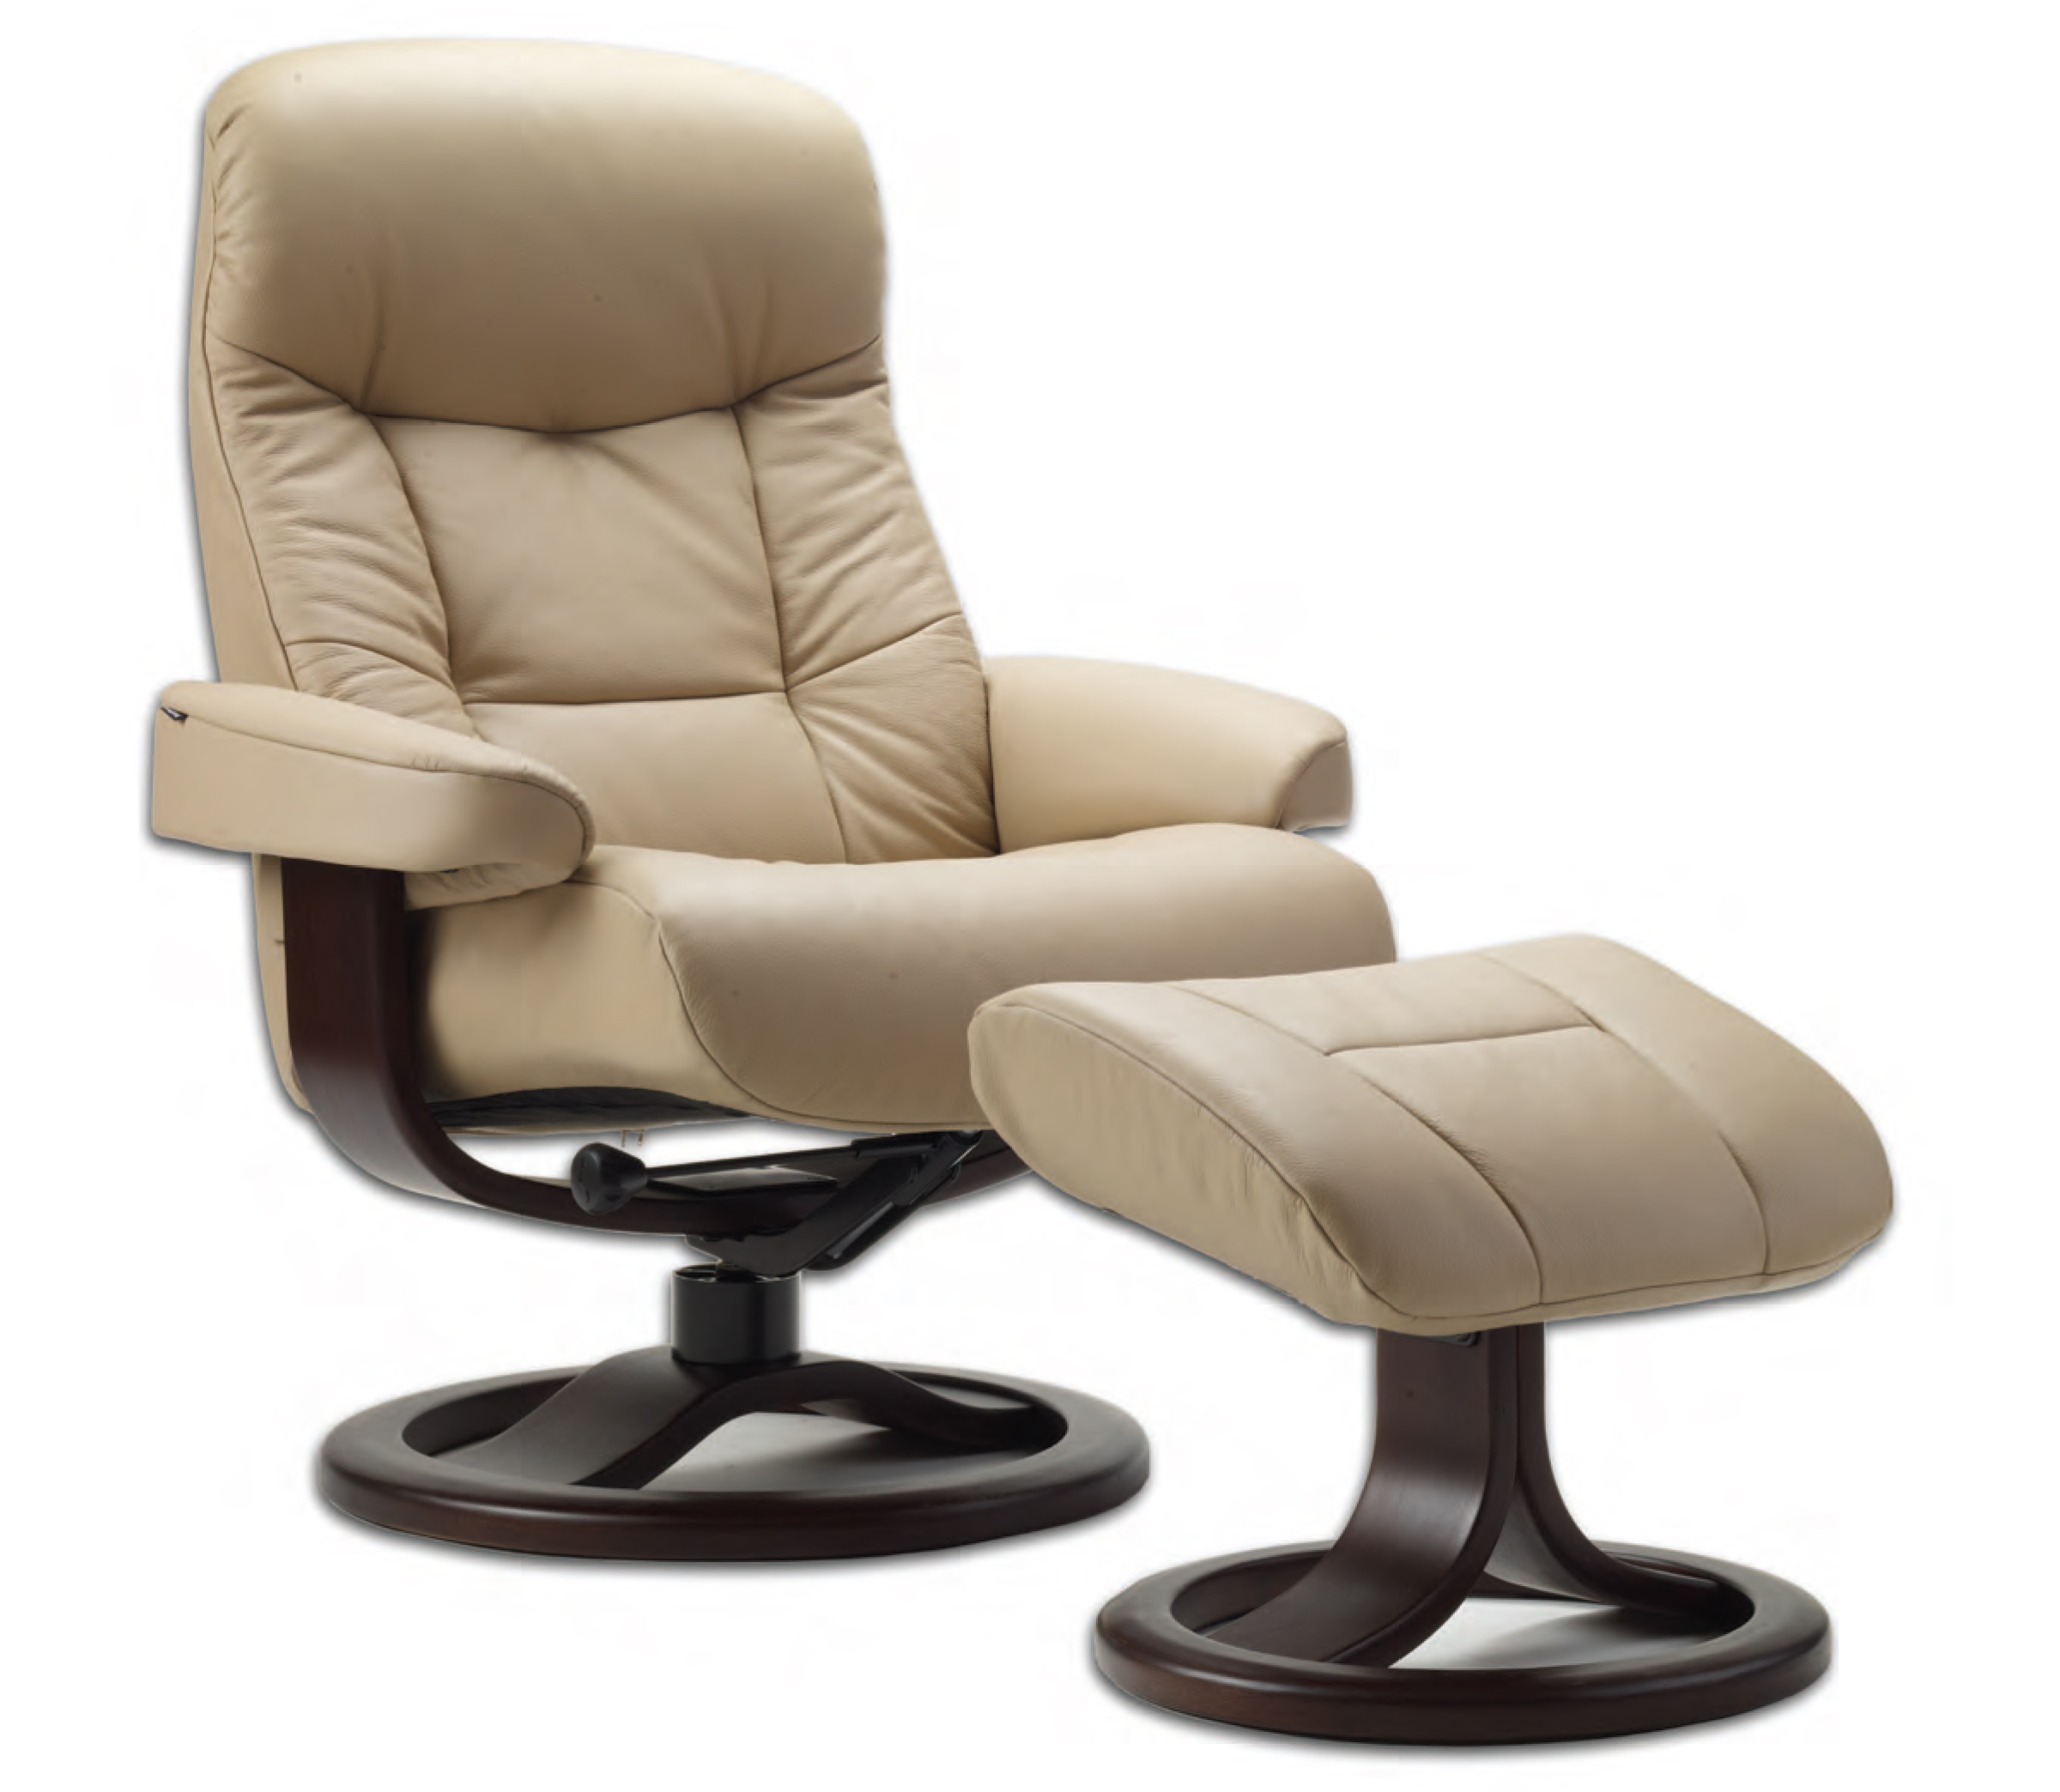 Ergonomic Living Room Chair Fjords 215 Muldal Ergonomic Leather Recliner Chair